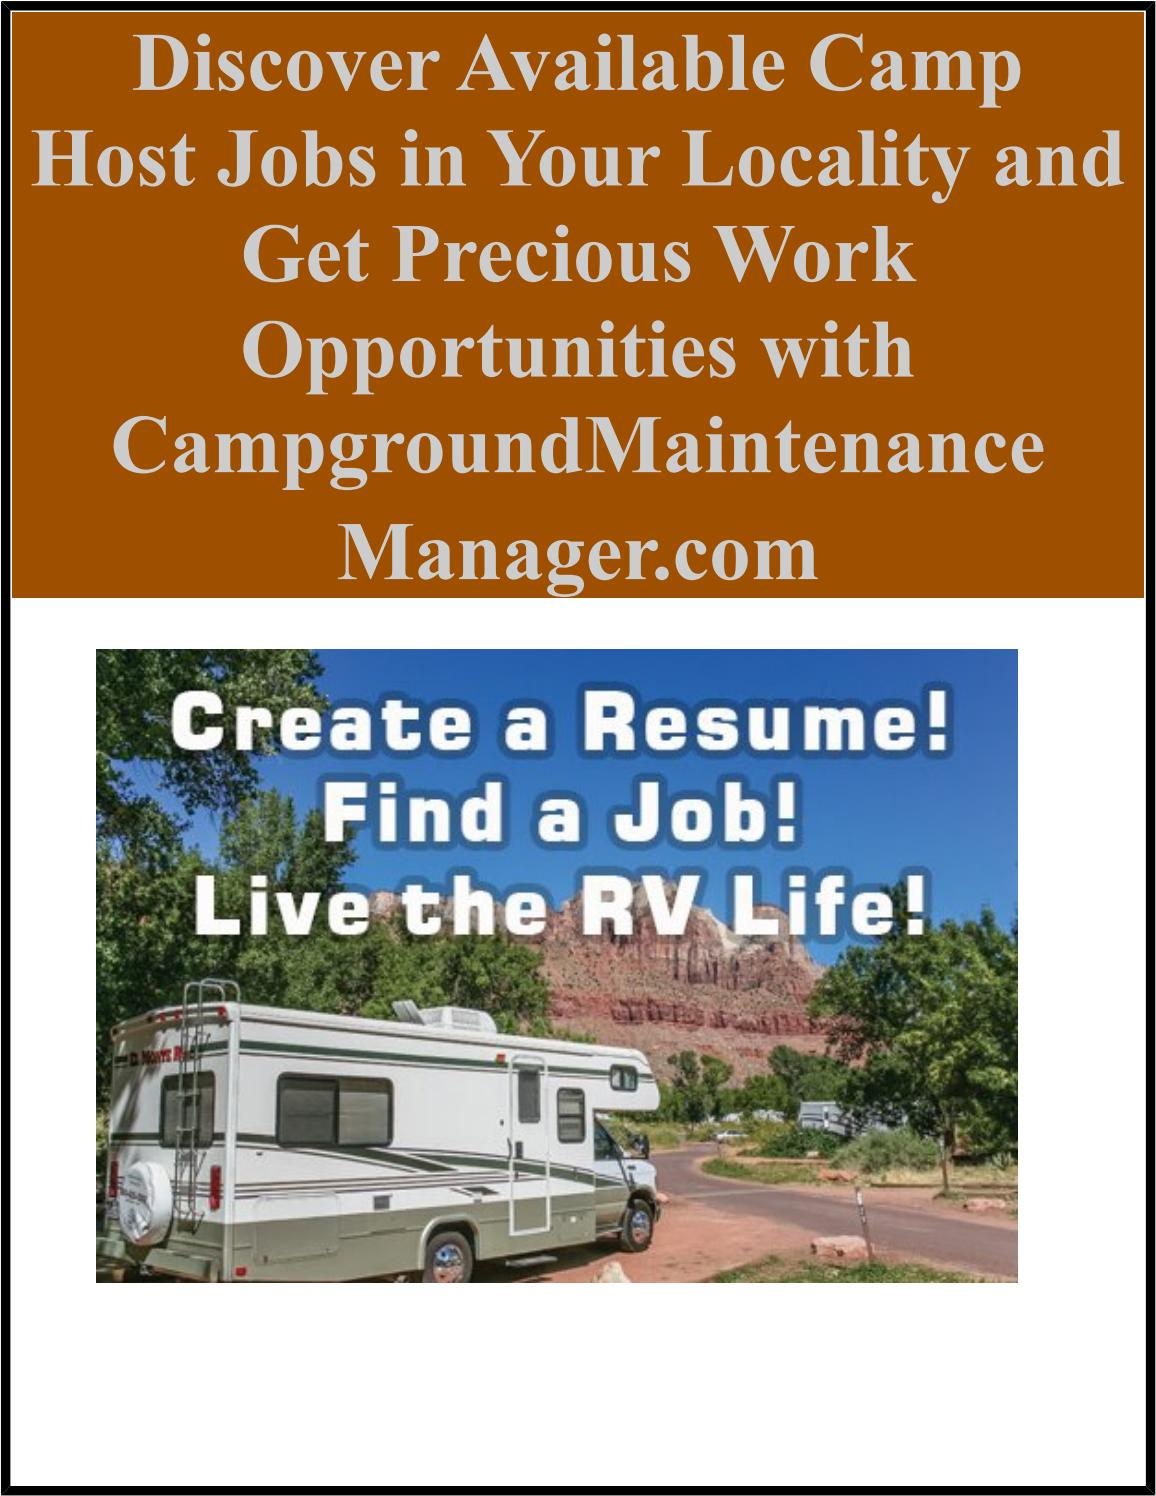 Discover Available Camp Host Jobs in Your Locality and Get Precious Work Opportunities